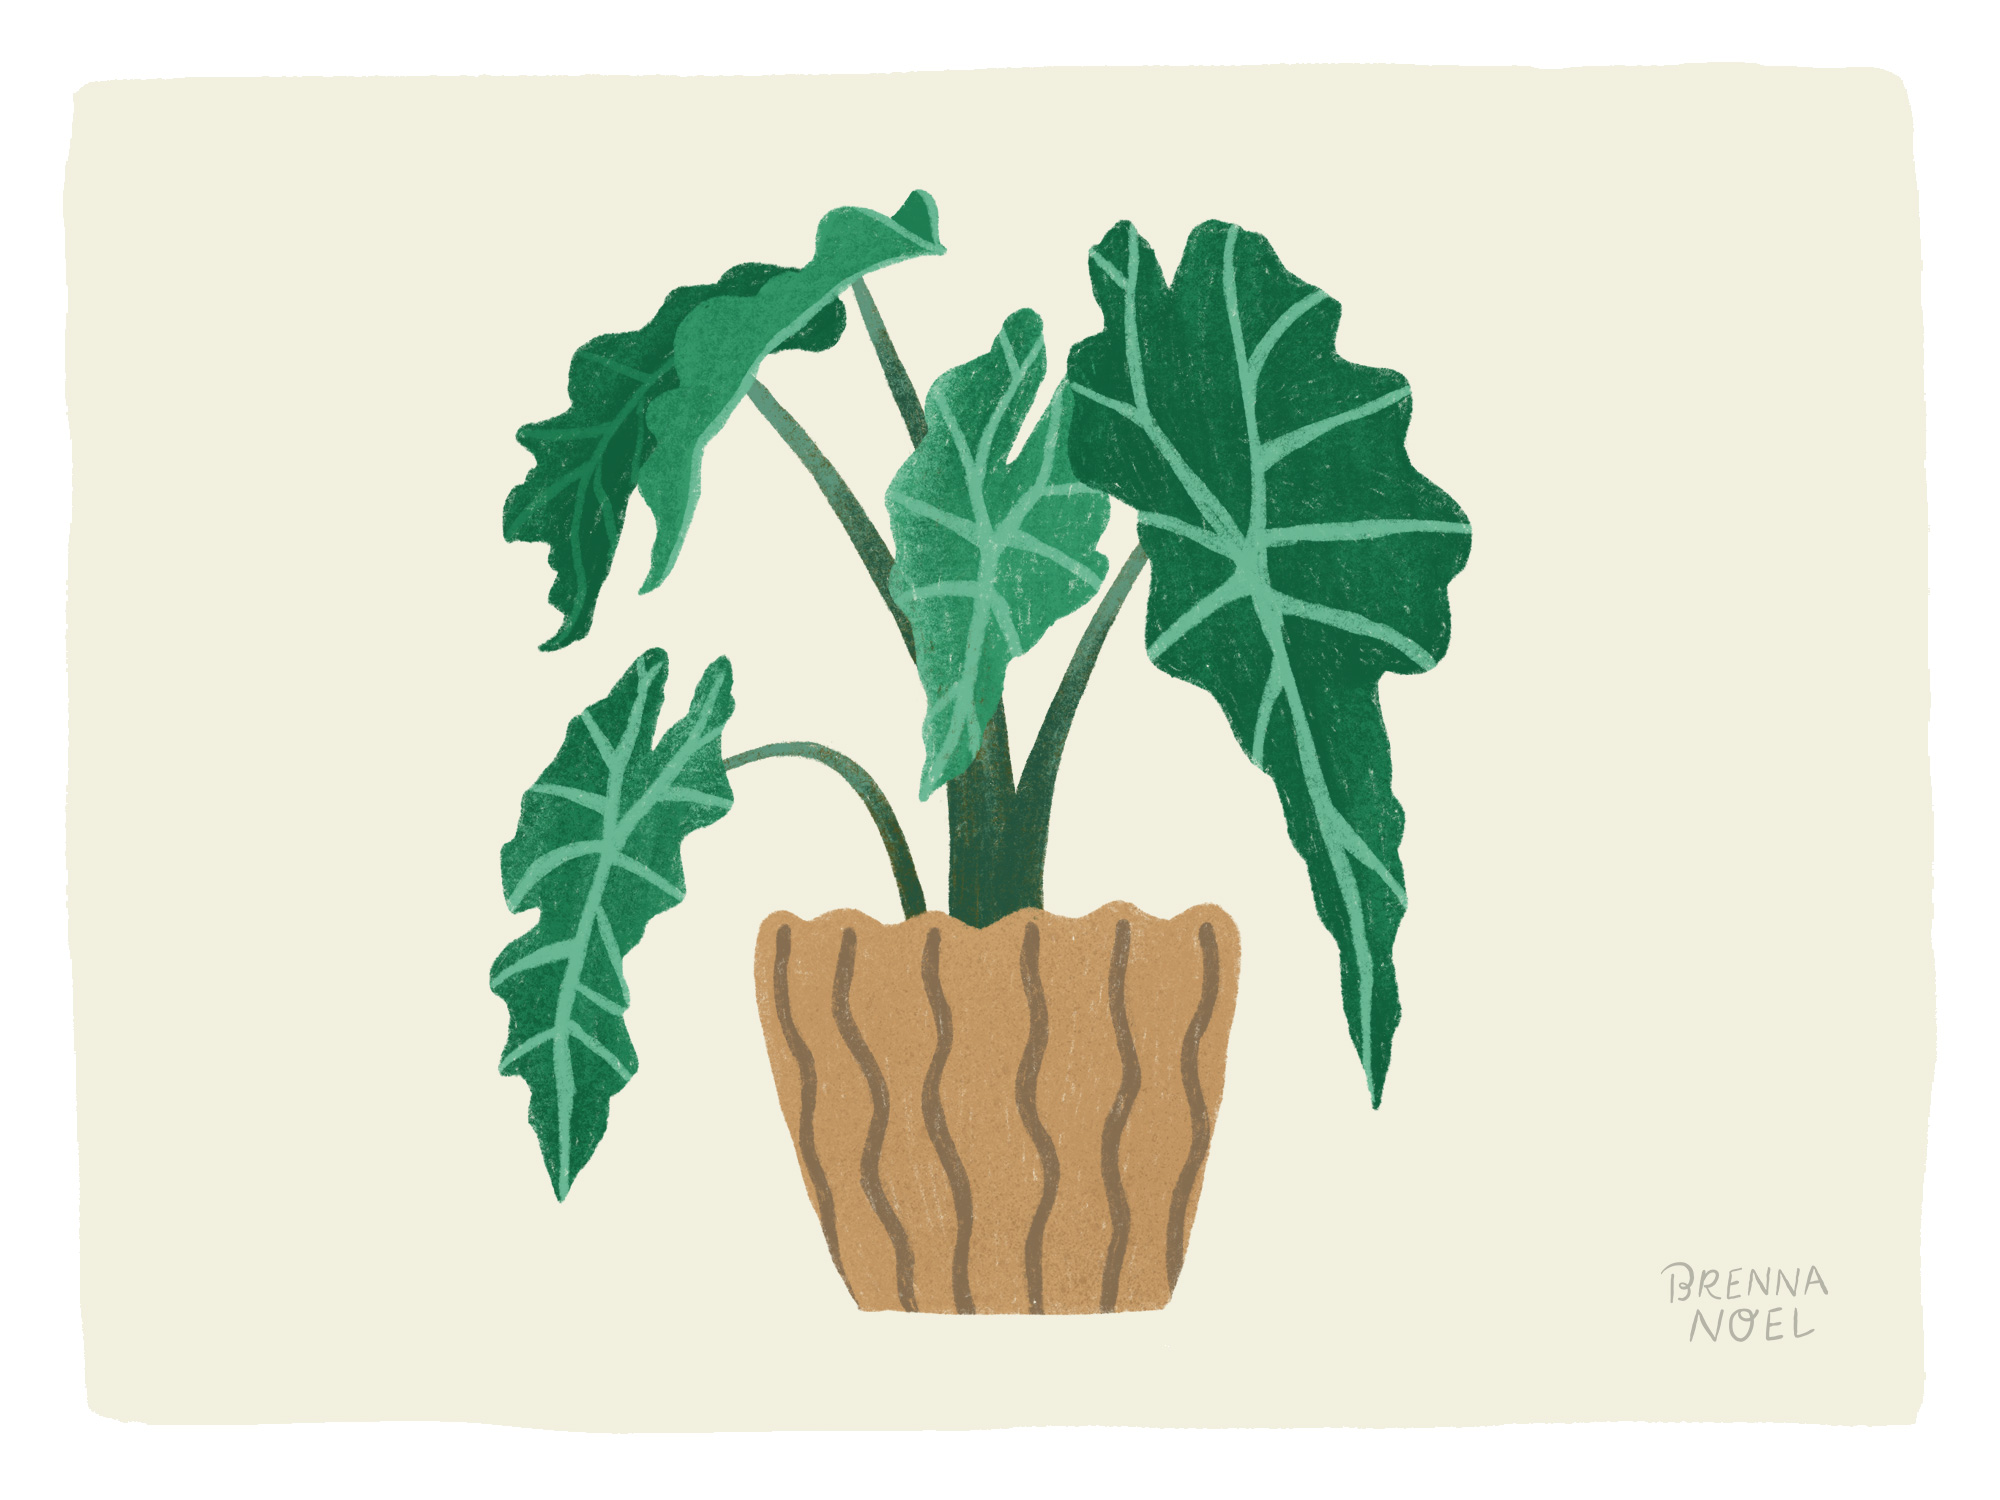 BN-Dribbble-Houseplant10.jpg